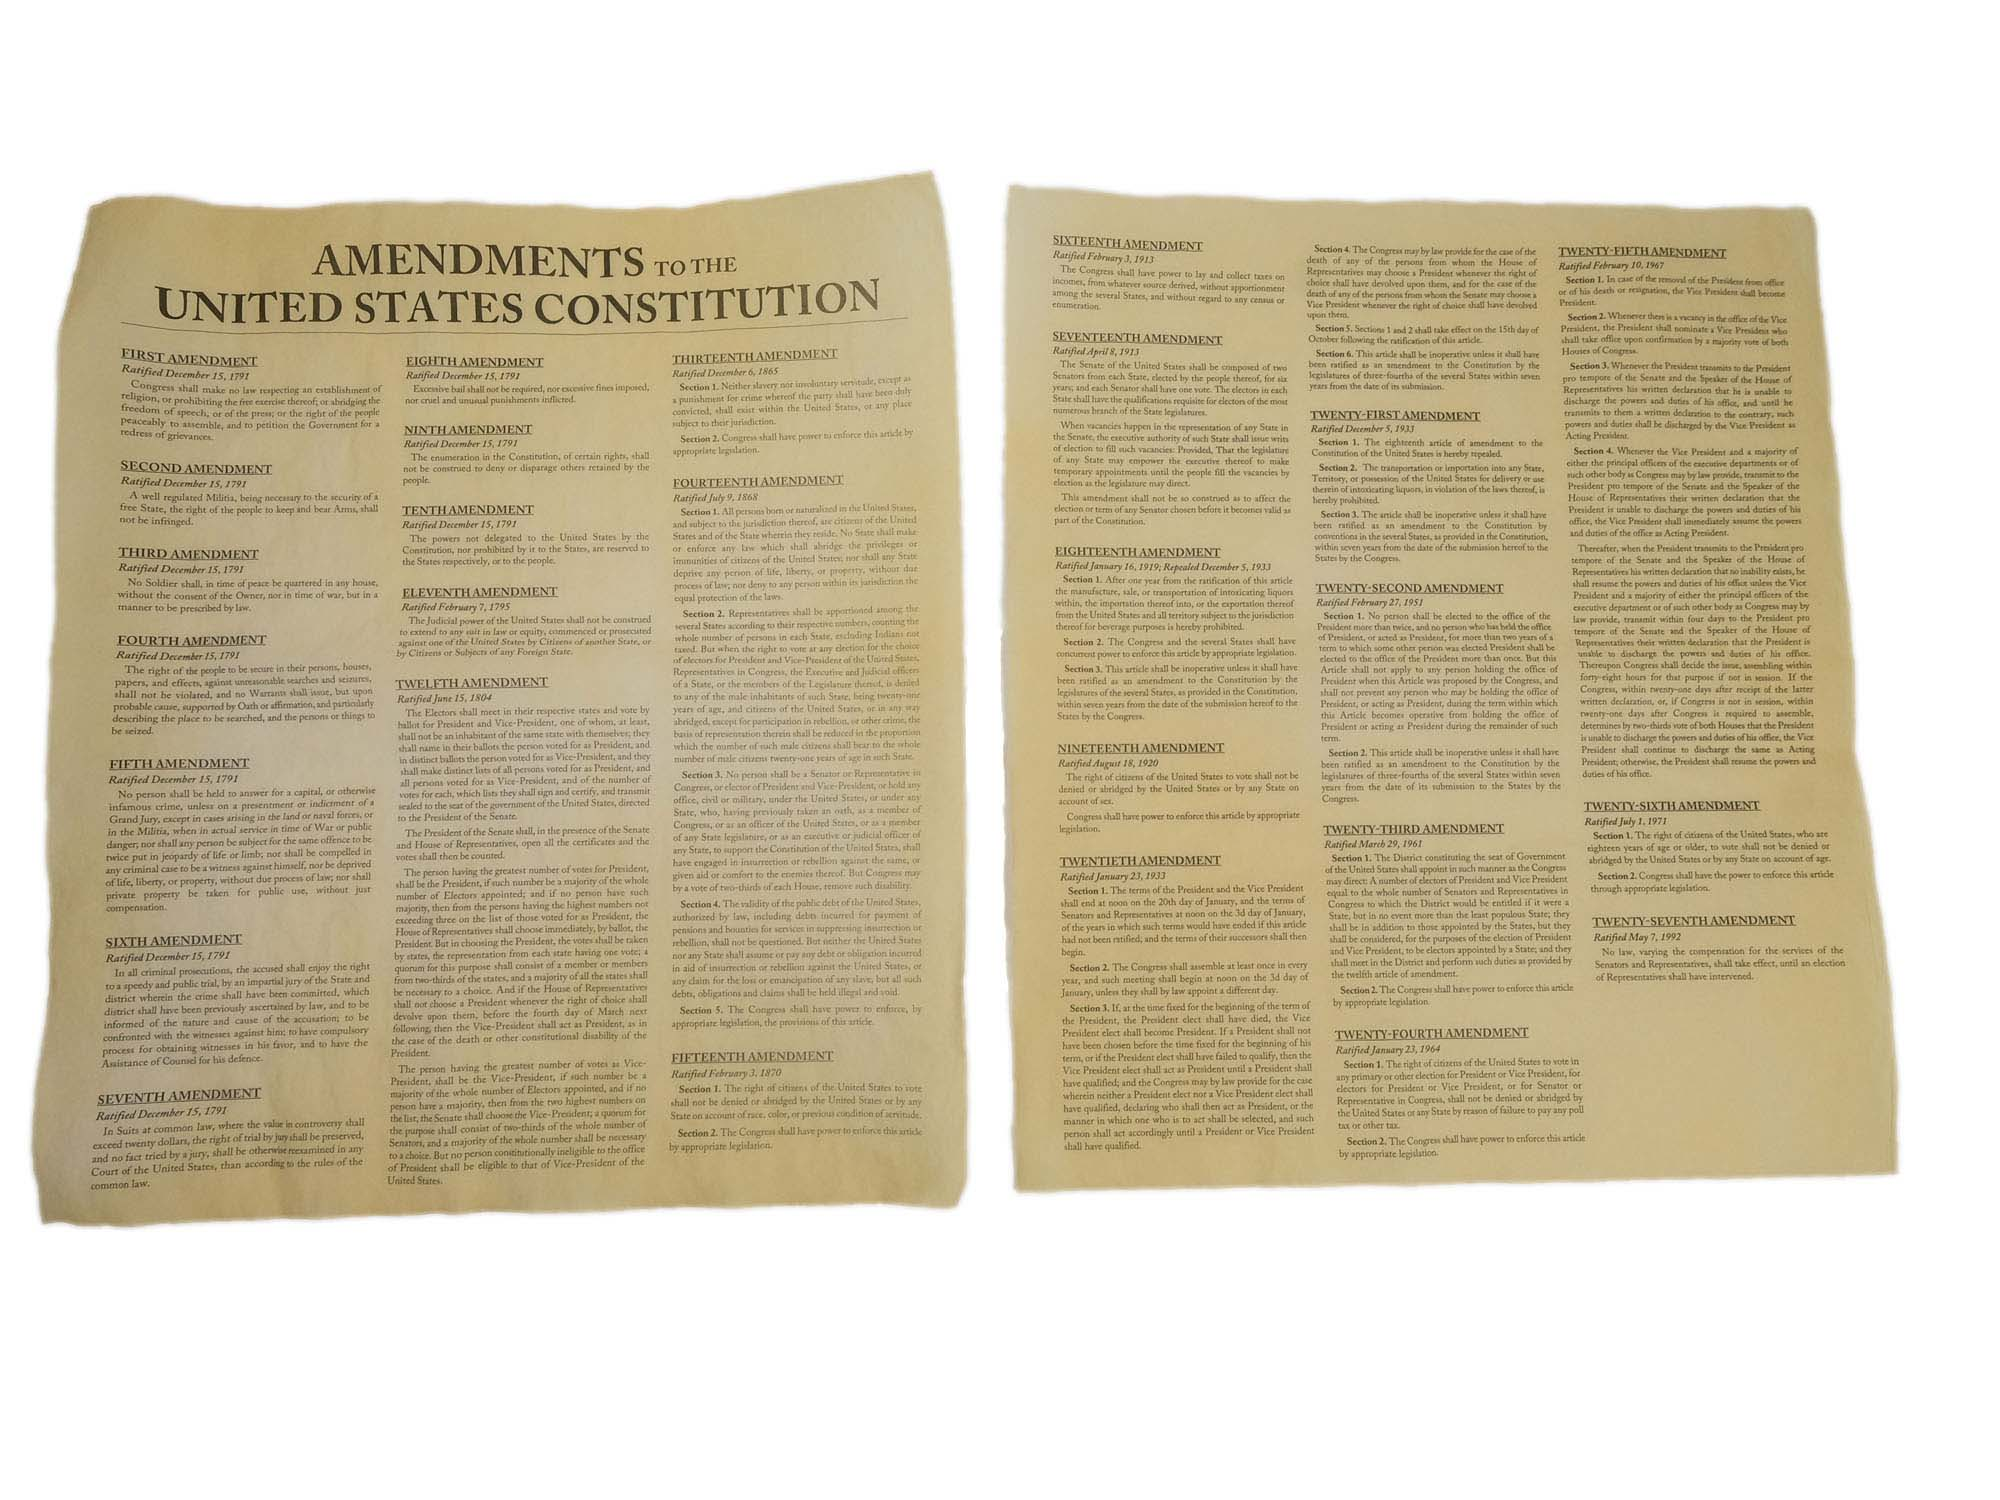 Amendments to the United States Constitution (2 pages)